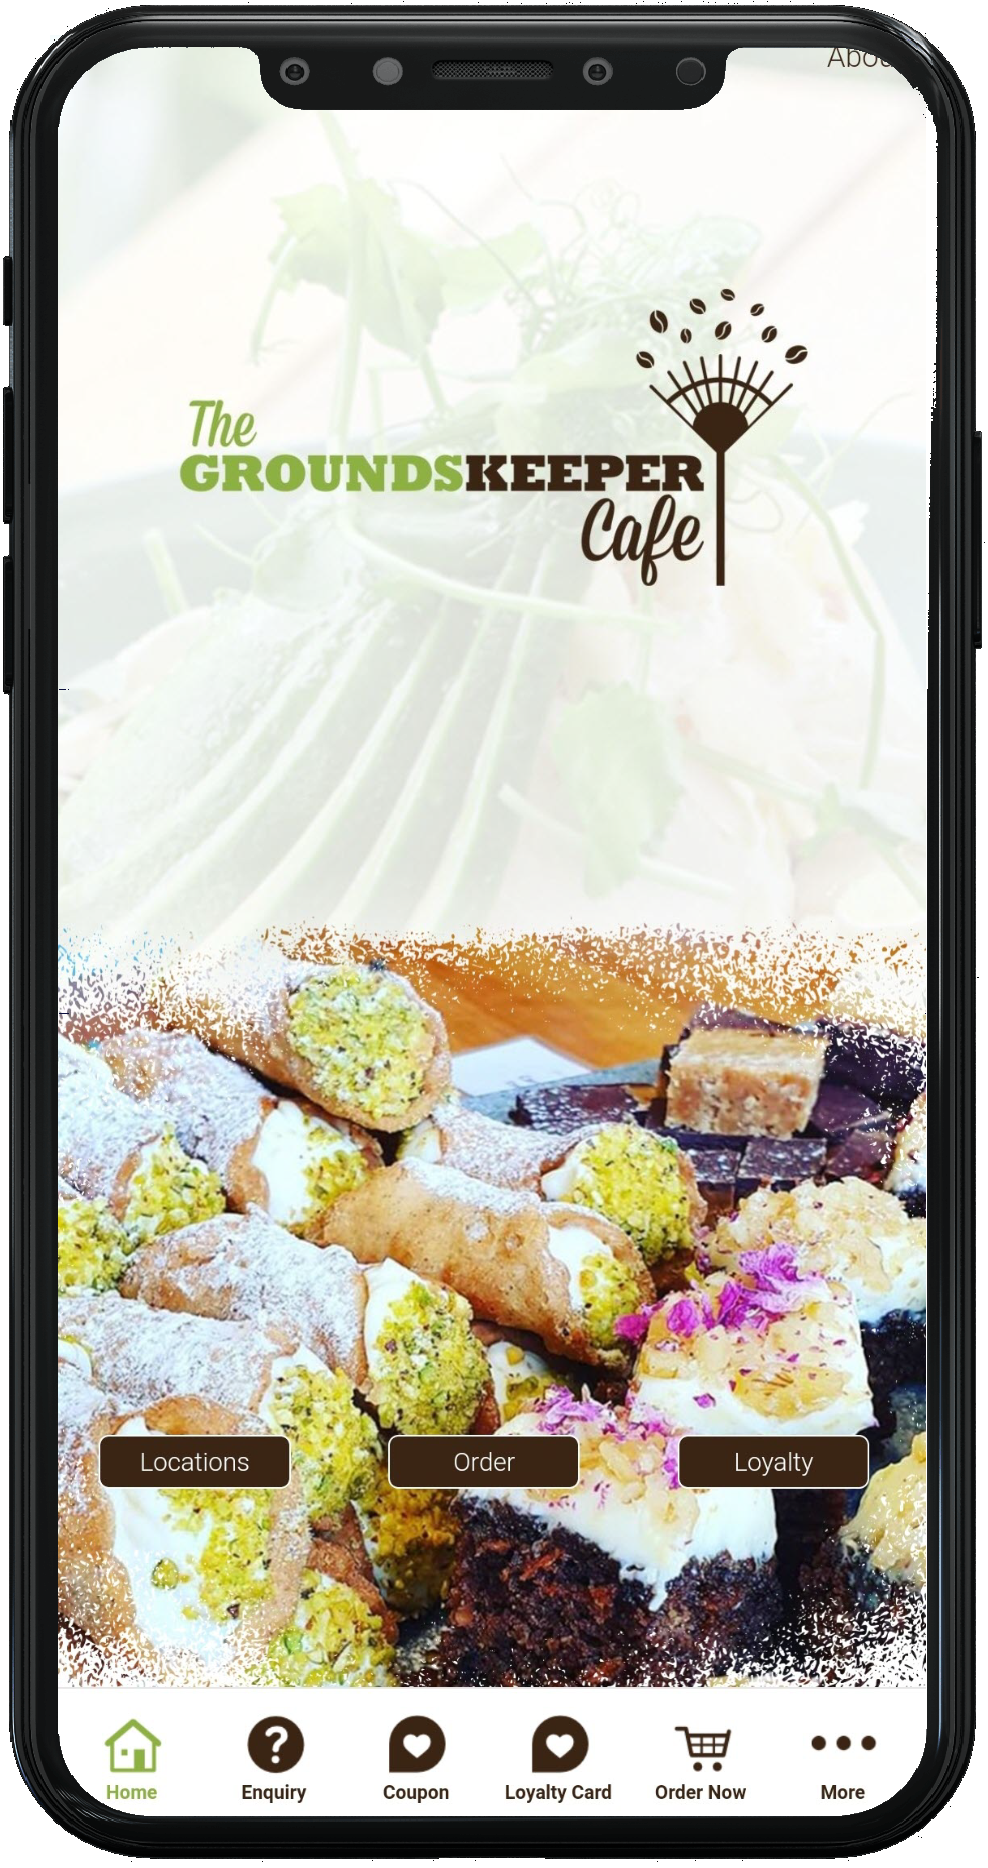 The-Grounds-Keeper-Cafe-Phone